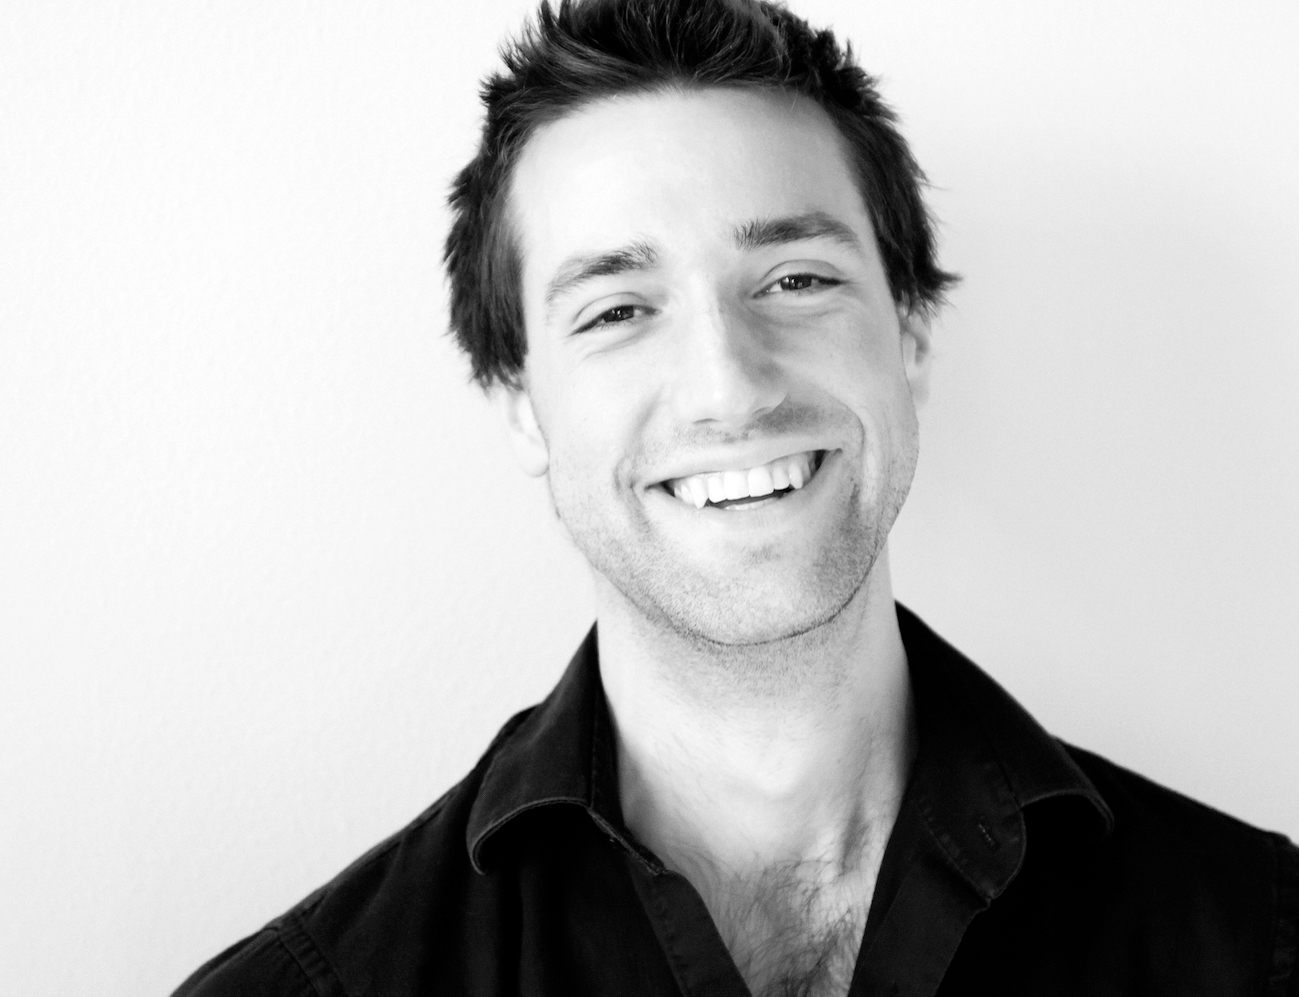 Aaron Alexander CR, LMT, CPT is an accomplished manual therapist and movement coach with over a decade of experience. He is the founder of Align Therapy™, an integrated approach to functional movement and self-care that has helped thousands of people out of pain and into health. He hosts the top-rated Align Podcast featuring the biggest names in movement and wellness. Aaron's clients include Olympic and professional athletes and he speaks and teaches internationally.